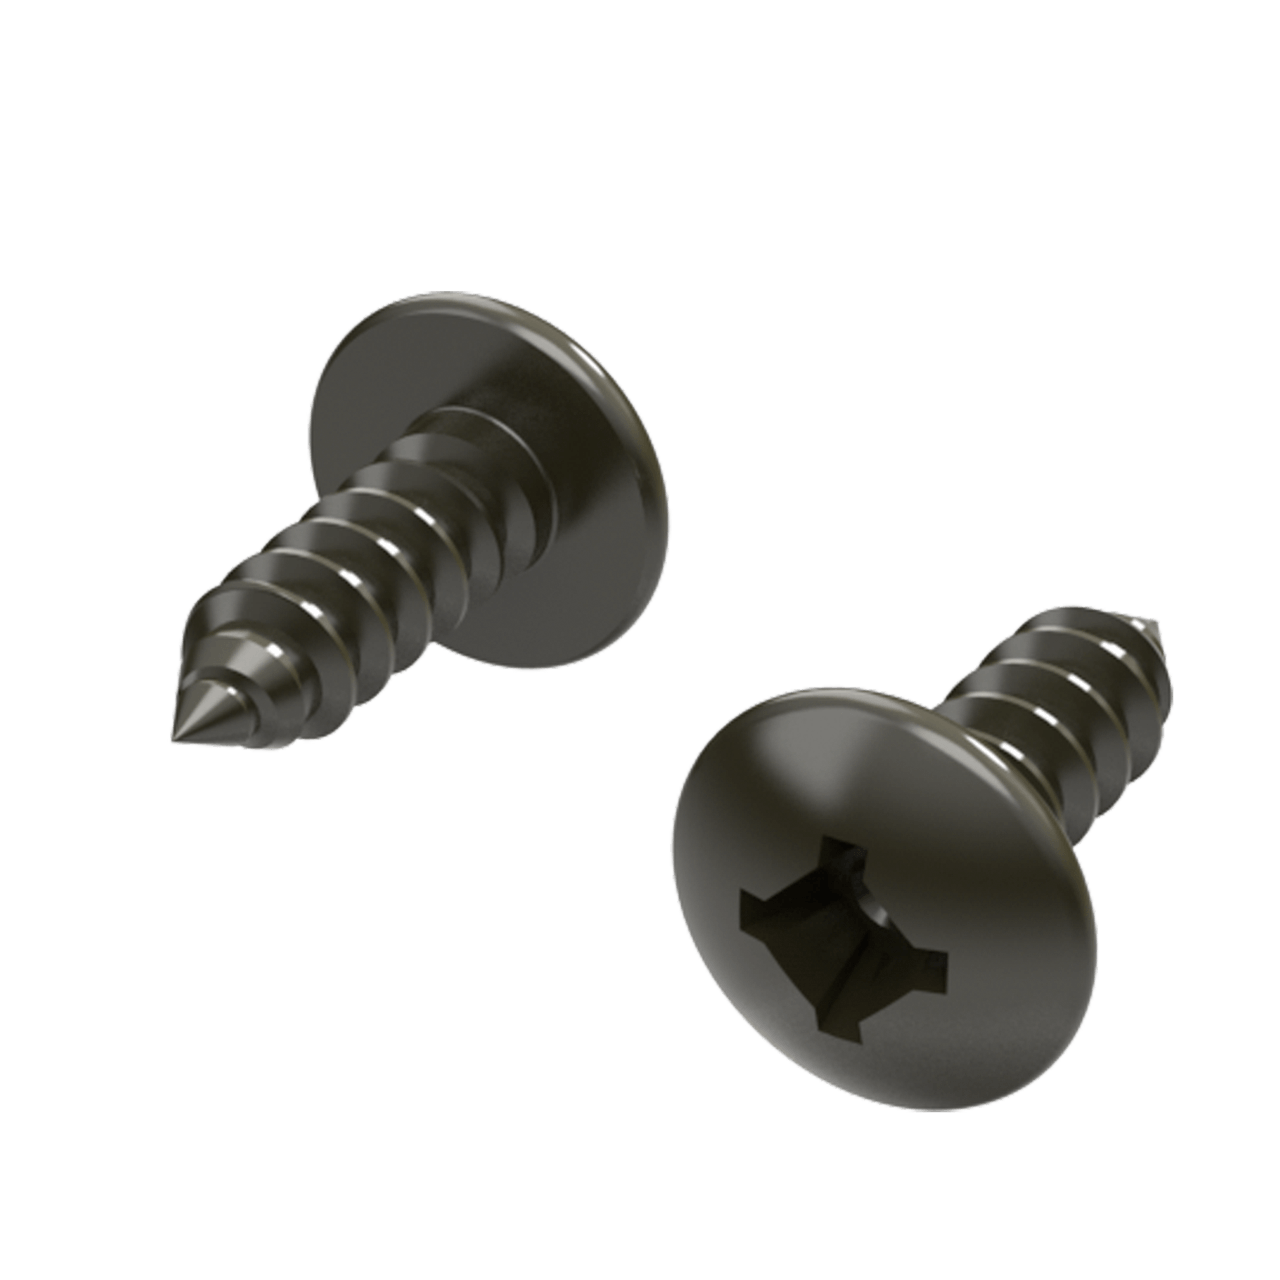 "Quadrex Wood Screw - #8 x 1/2"", 3/4 view"